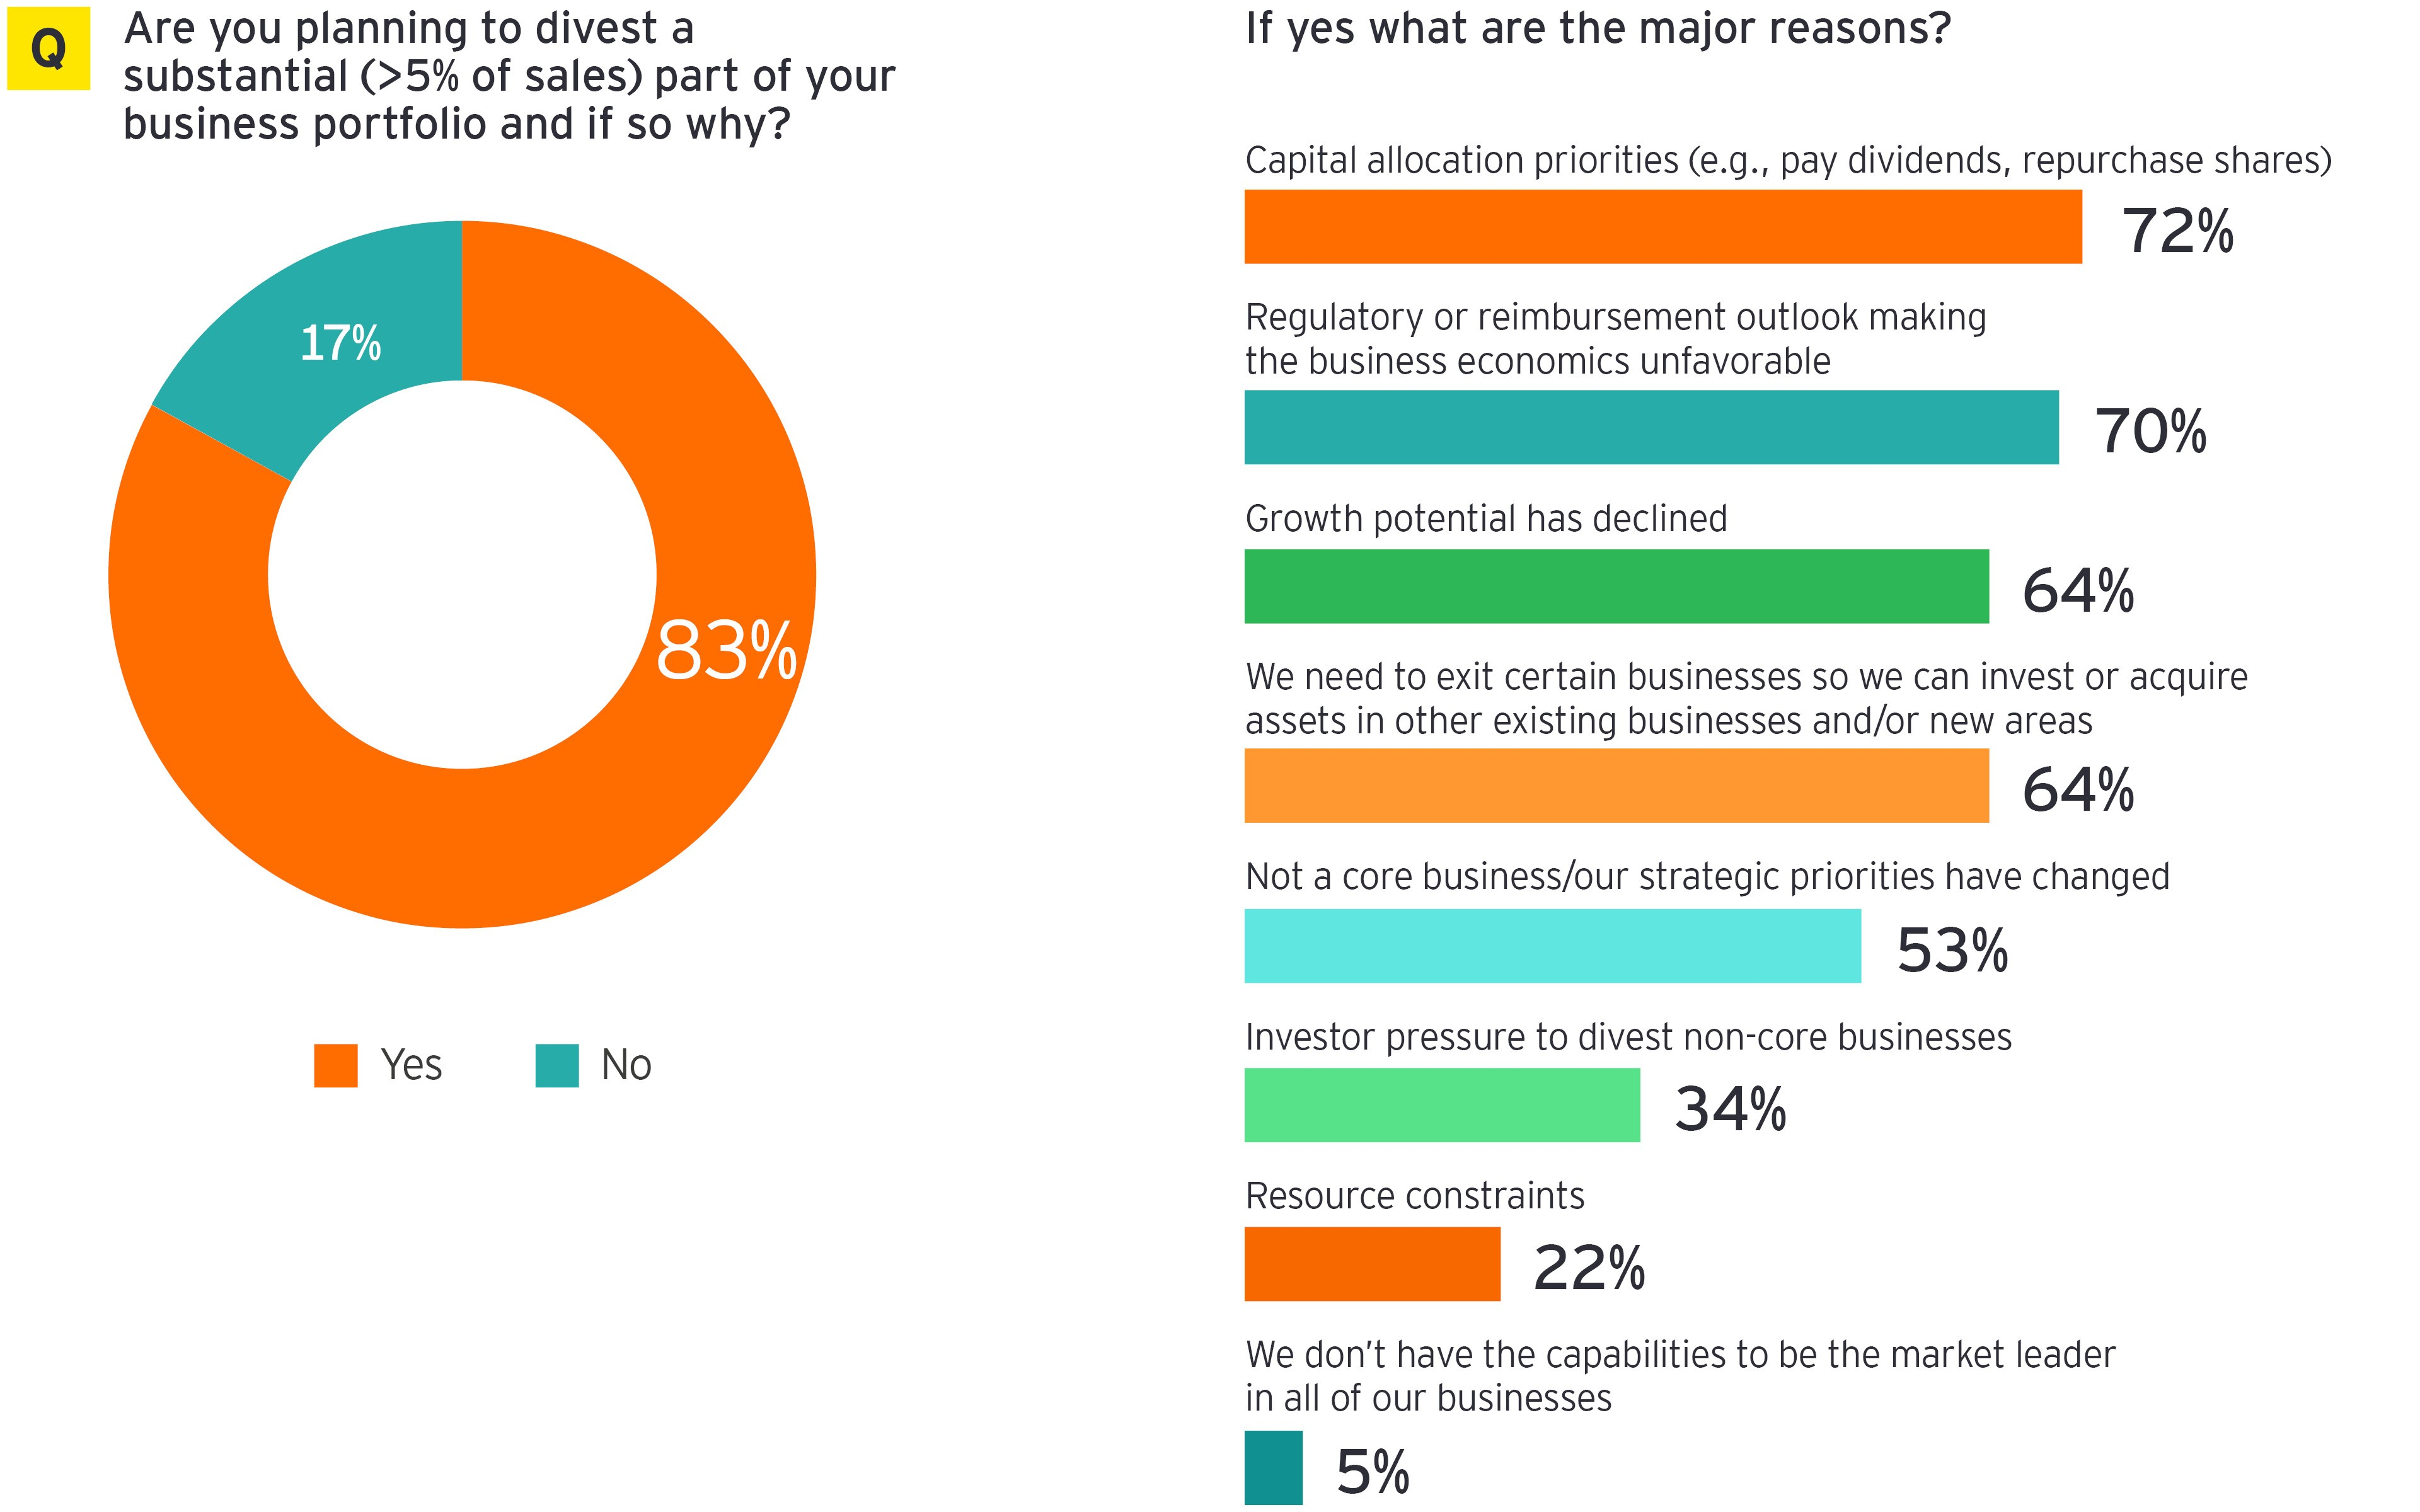 Are you planning to divest a substantial part of your business portfolio? 83% said yes.